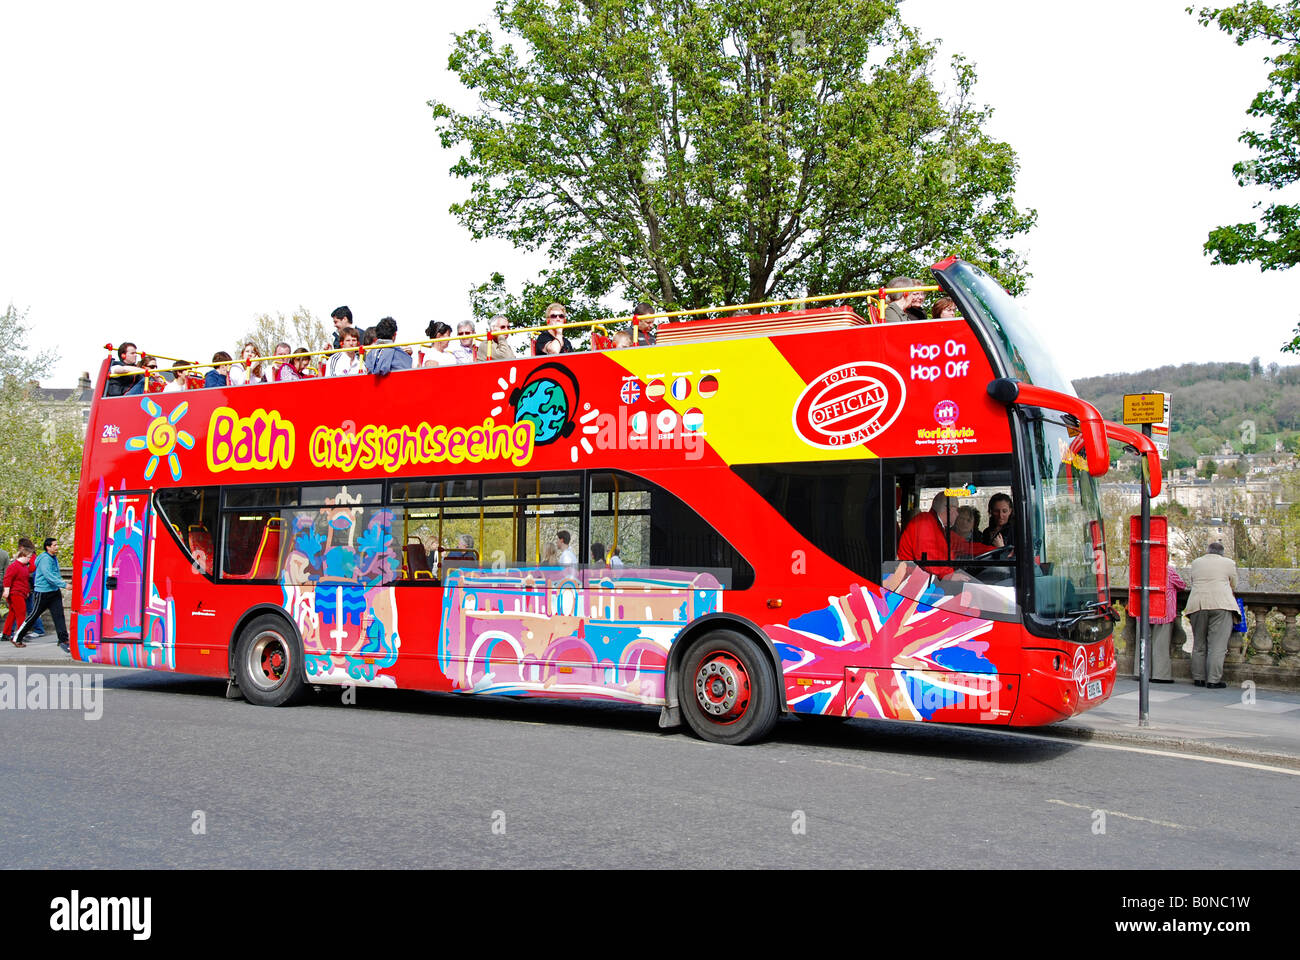 a traditional tour bus in bath,england - Stock Image